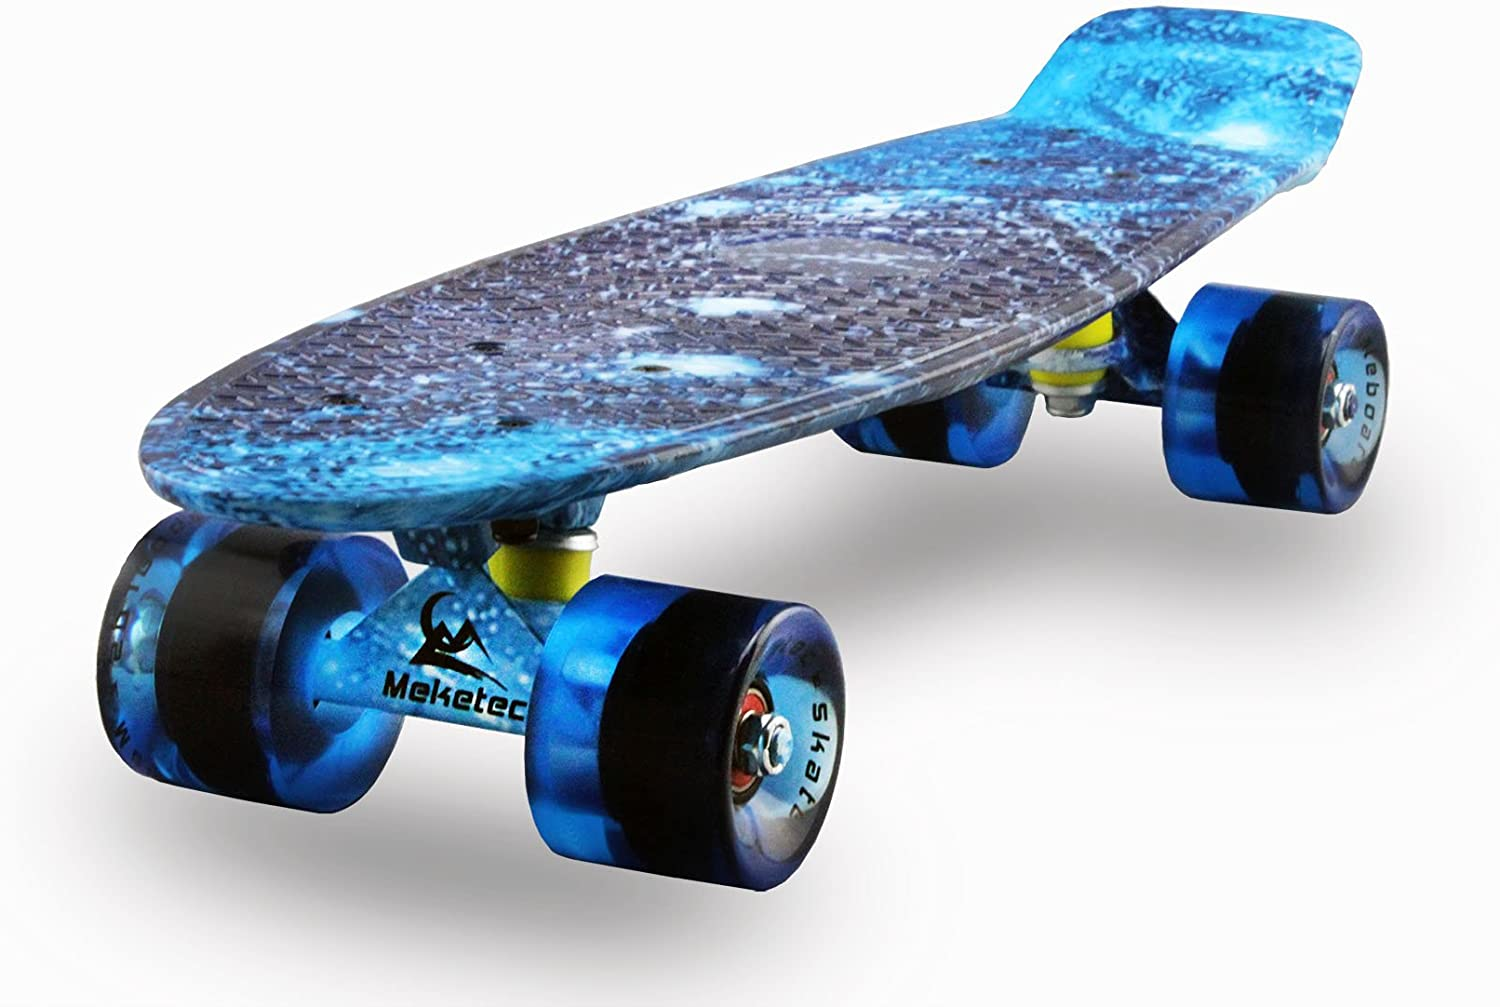 Skateboards Complete Mini Cruiser Retro Skateboard for Kids Boys Youths Beginners 22 Inch(The Starry Sky) : Sports & Outdoors